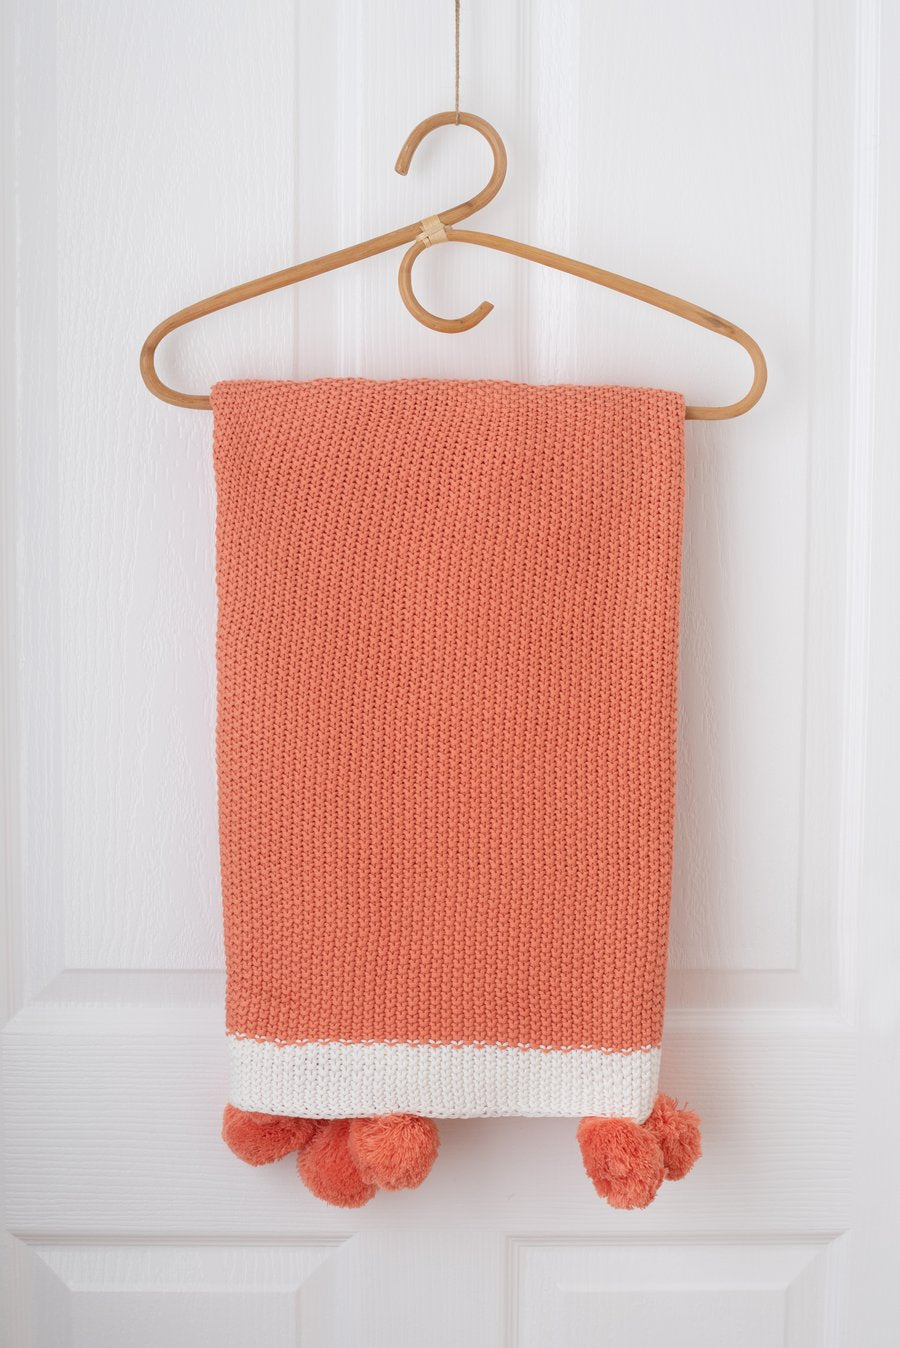 Kute Cuddles - Maize Knit Baby Blanket - Coral